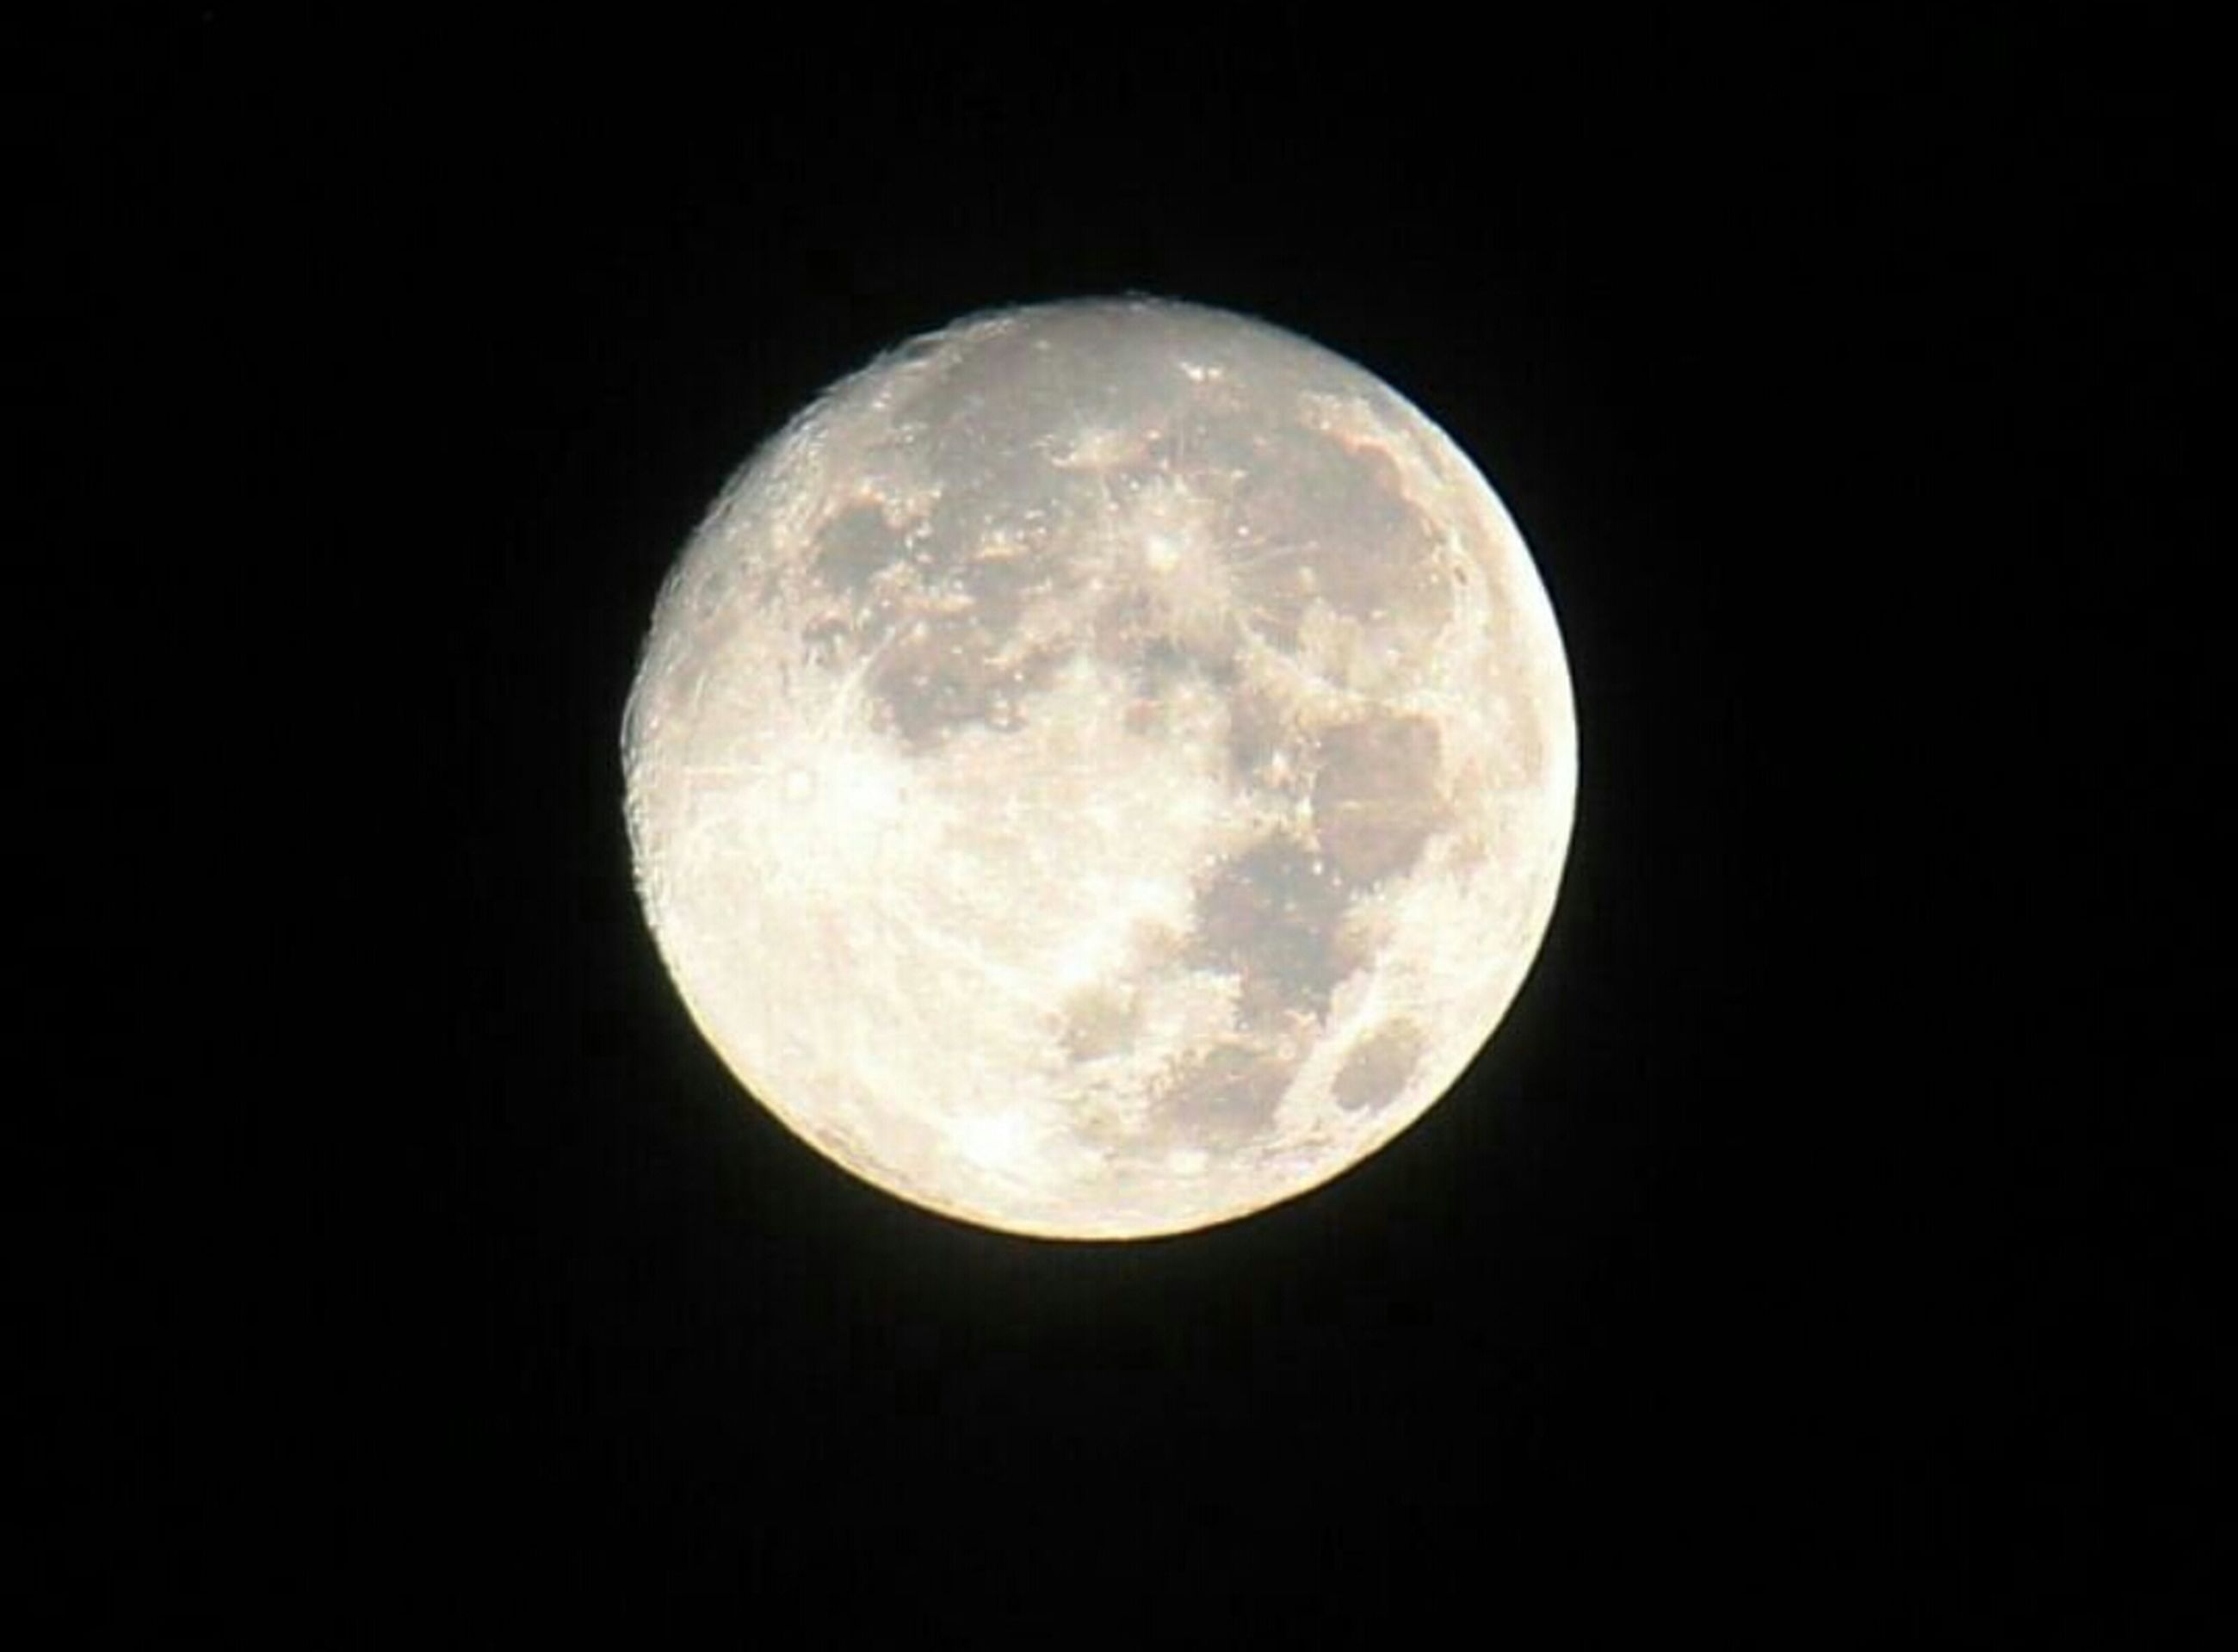 moon, astronomy, full moon, night, planetary moon, moon surface, circle, space exploration, discovery, low angle view, dark, copy space, sphere, beauty in nature, scenics, tranquil scene, exploration, tranquility, majestic, space